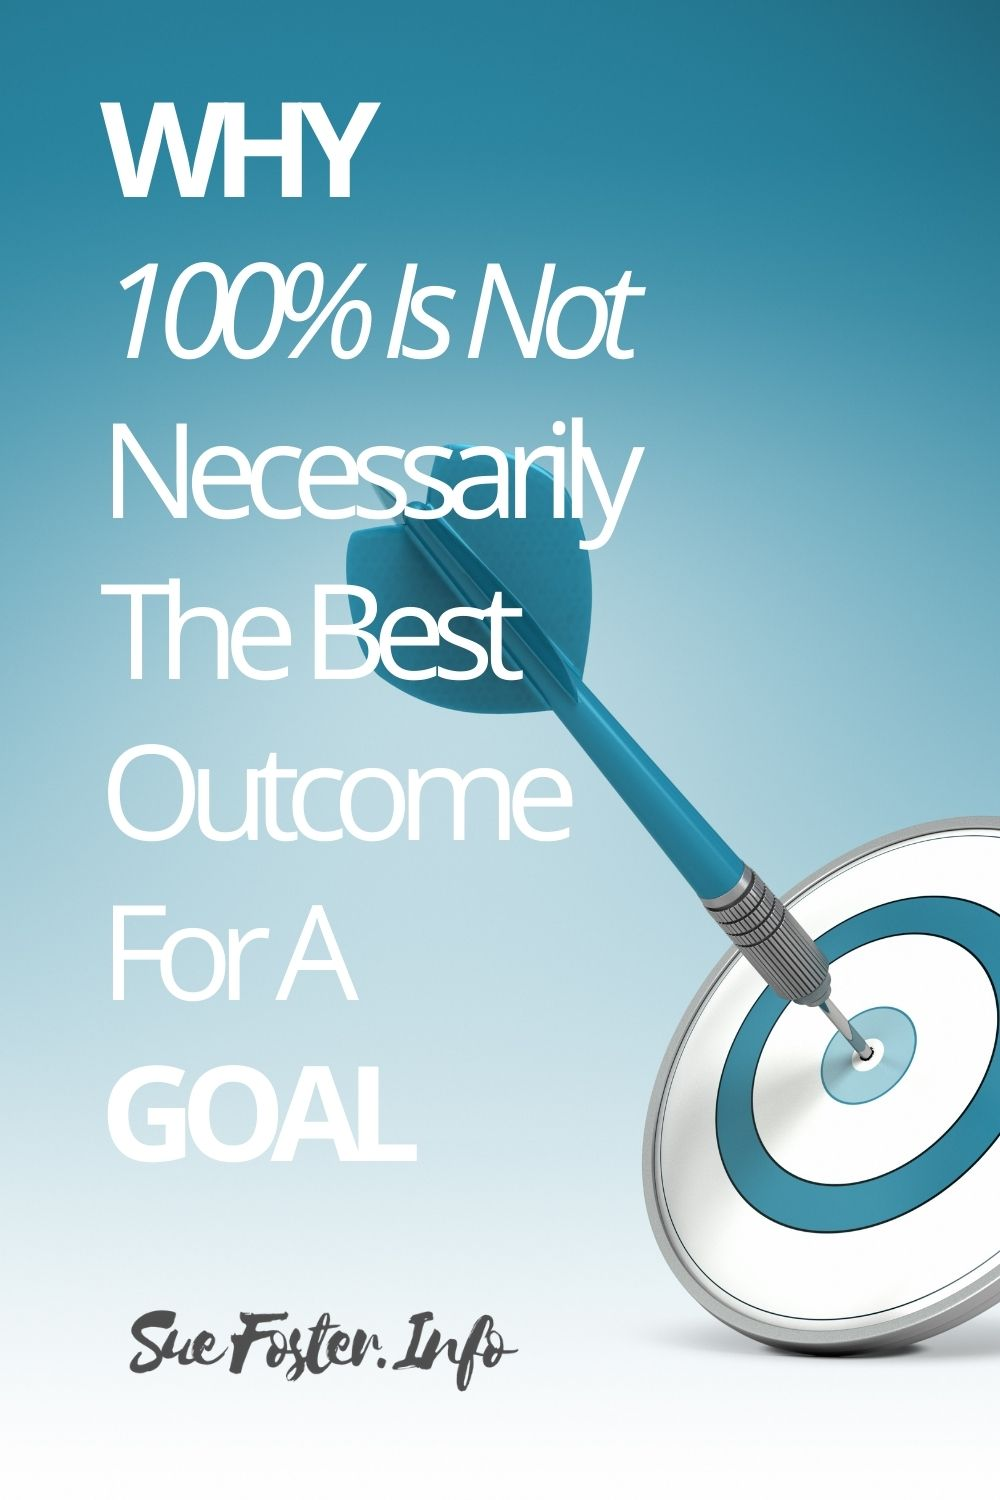 As odd as it sounds, fast growth companies like Google do not expect teams to achieve 100% of their goals. Achieving goals at somewhere between 60% and 80% is preferable as this is why.